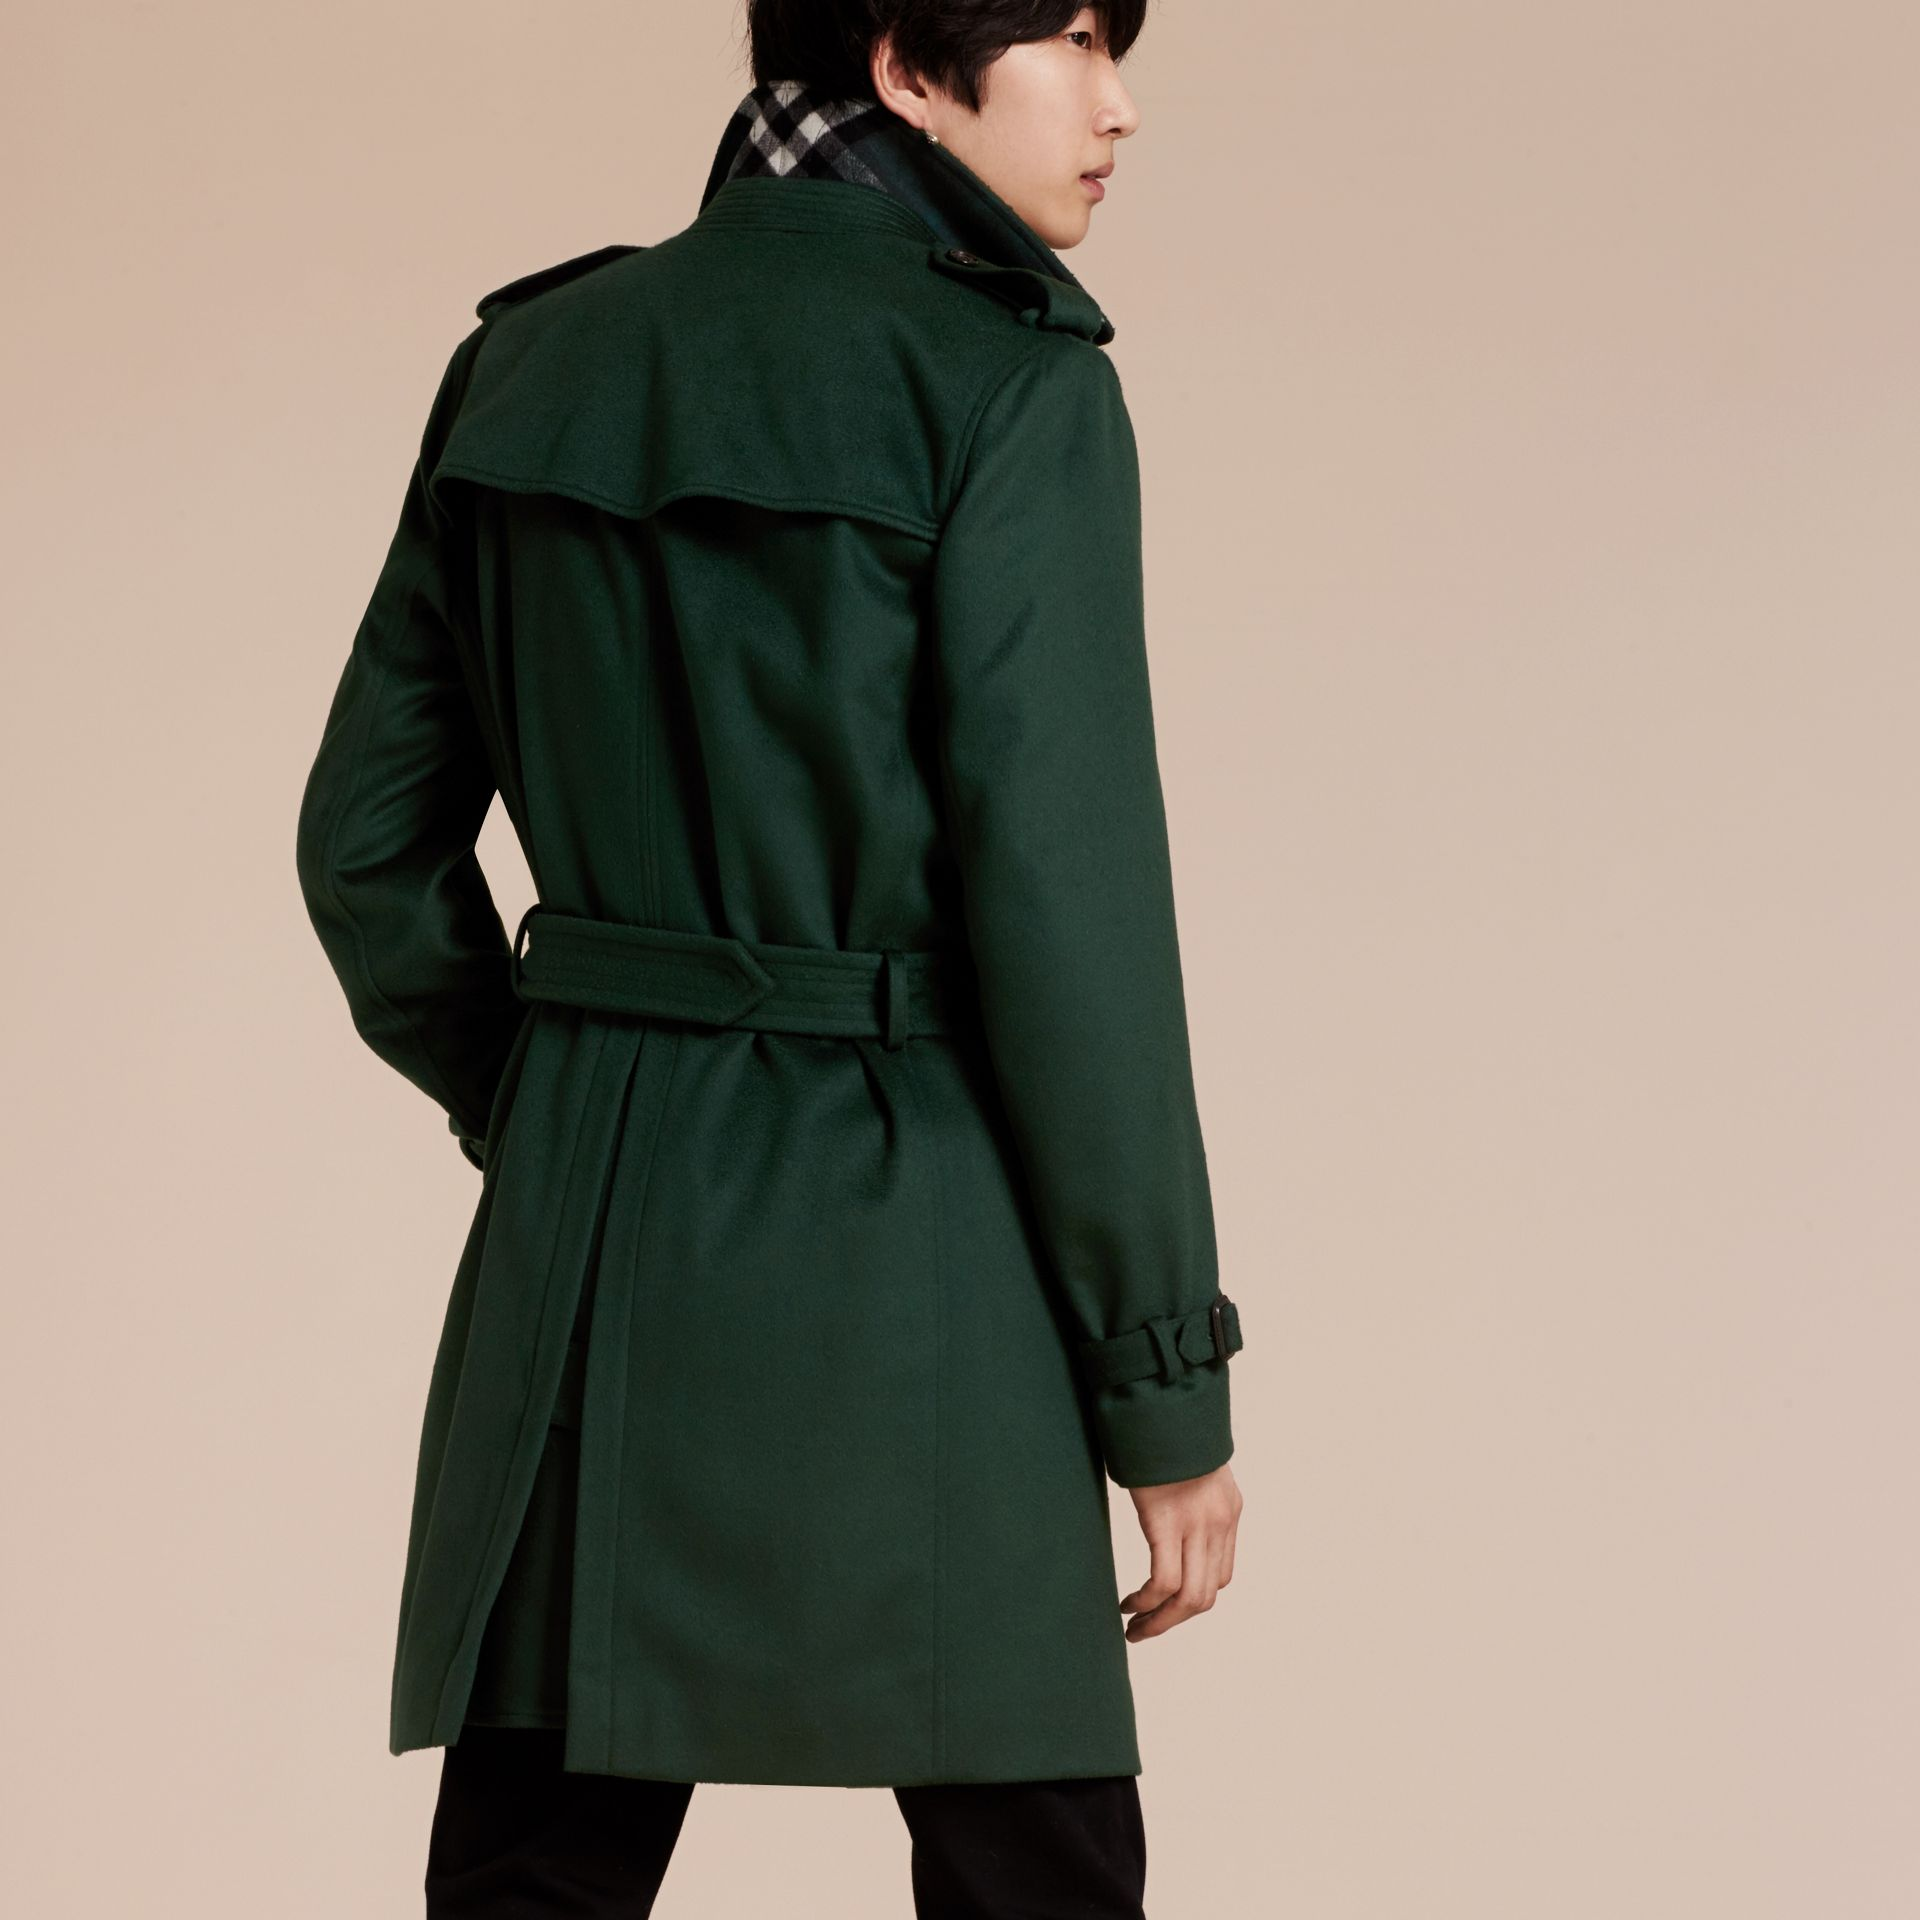 Dark military green Cashmere Trench Coat Dark Military Green - gallery image 3